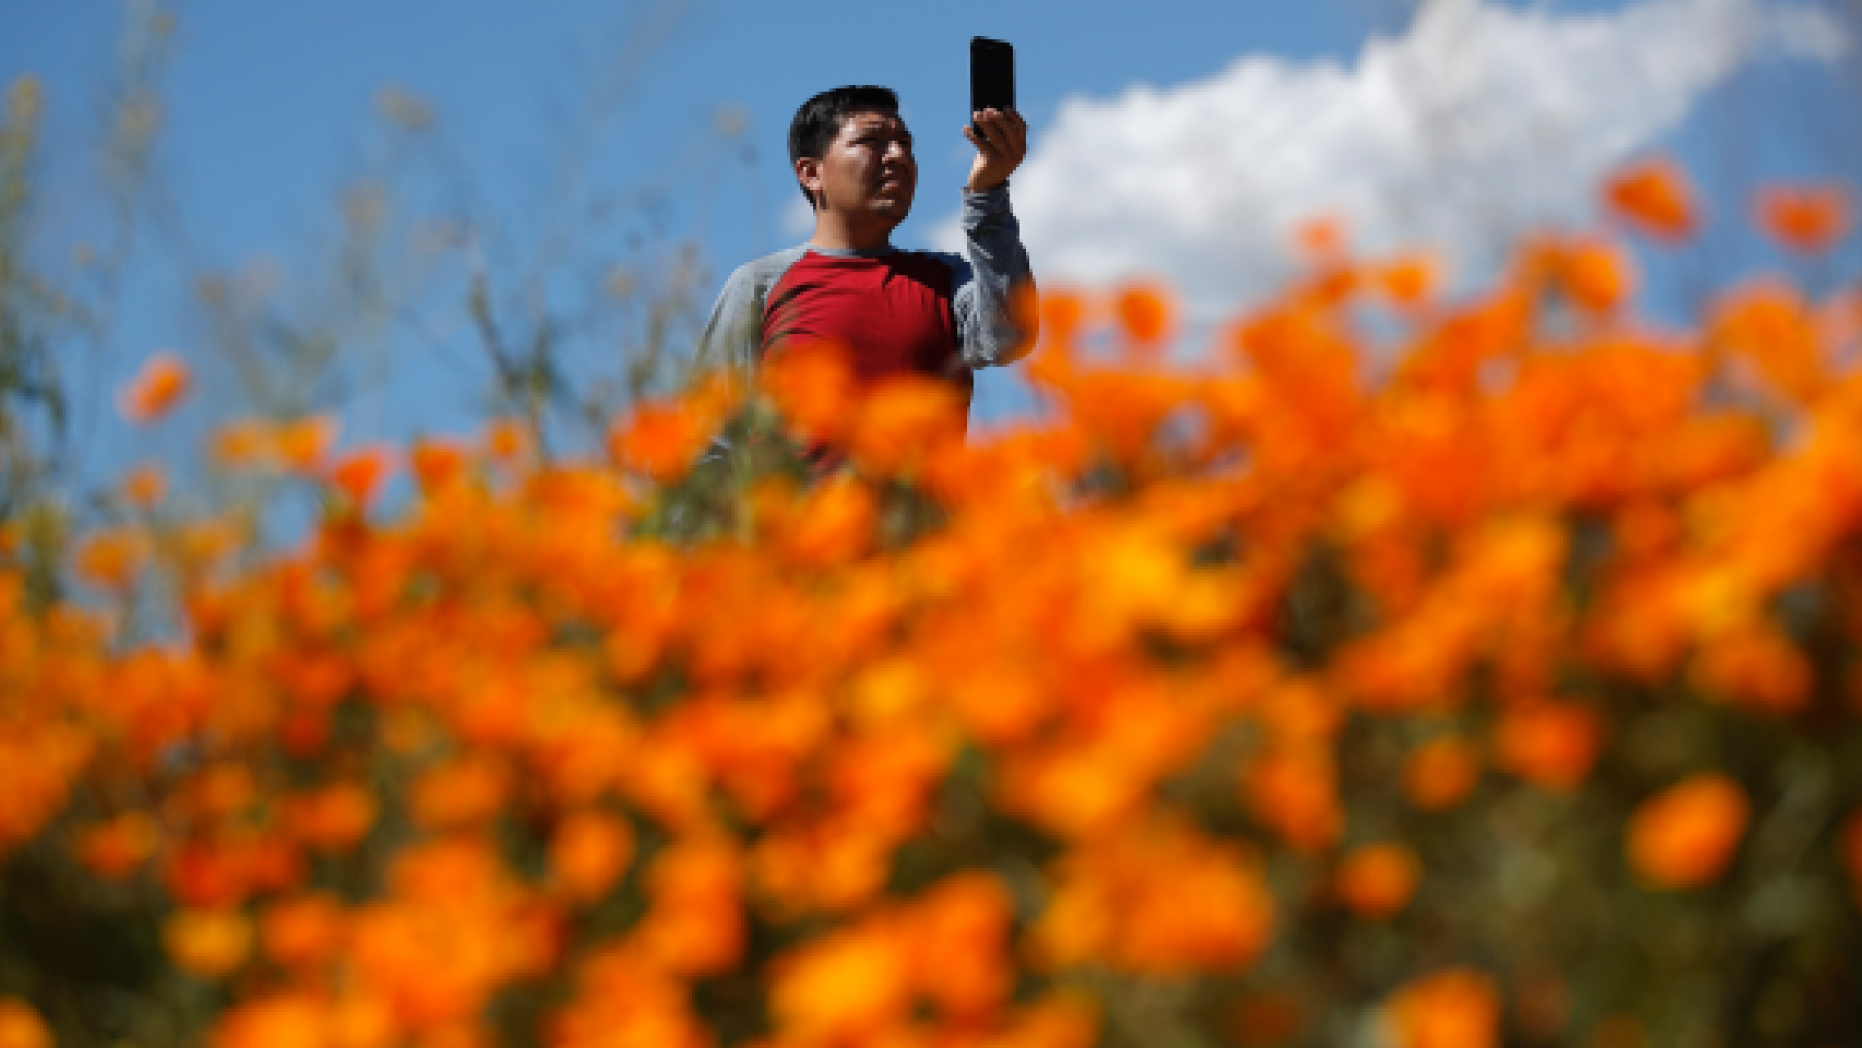 A man takes a picture among wildflowers in bloom Monday, March 18, 2019, in Lake Elsinore, Calif. About 150,000 people flocked over the weekend to see this year's rain-fed flaming orange patches of poppies lighting up the hillsides near Lake Elsinore. The crowds became so bad Sunday that Lake Elsinore officials  closed access to poppy-blanketed Walker Canyon. By Monday the #poppyshutdown announced by the city on Twitter was over and the road to the canyon was re-opened.  (AP Photo/Gregory Bull)